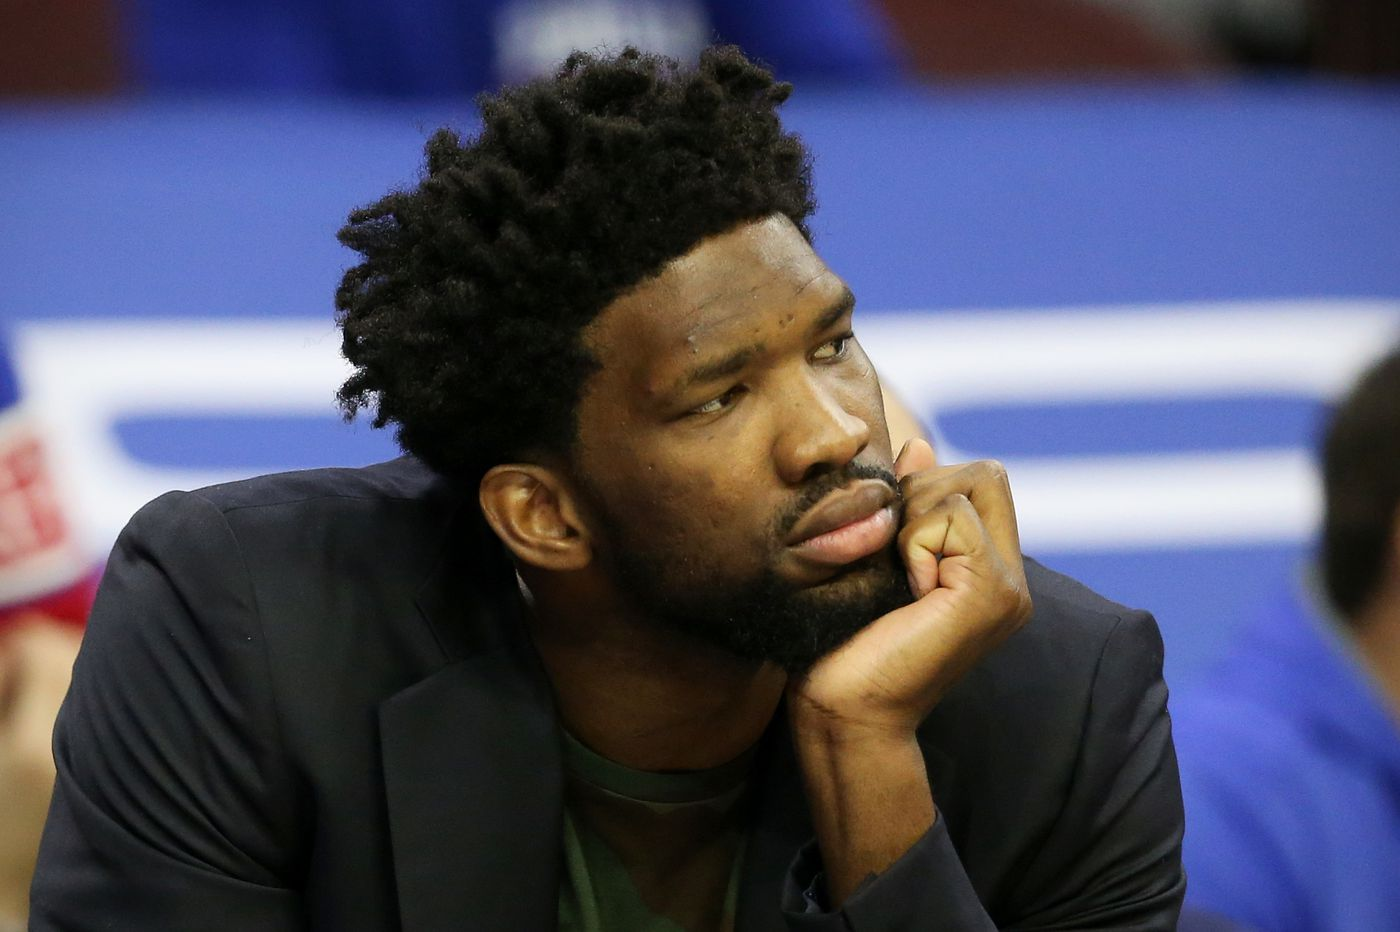 Embiid, Marjanovic both ruled out for OKC game